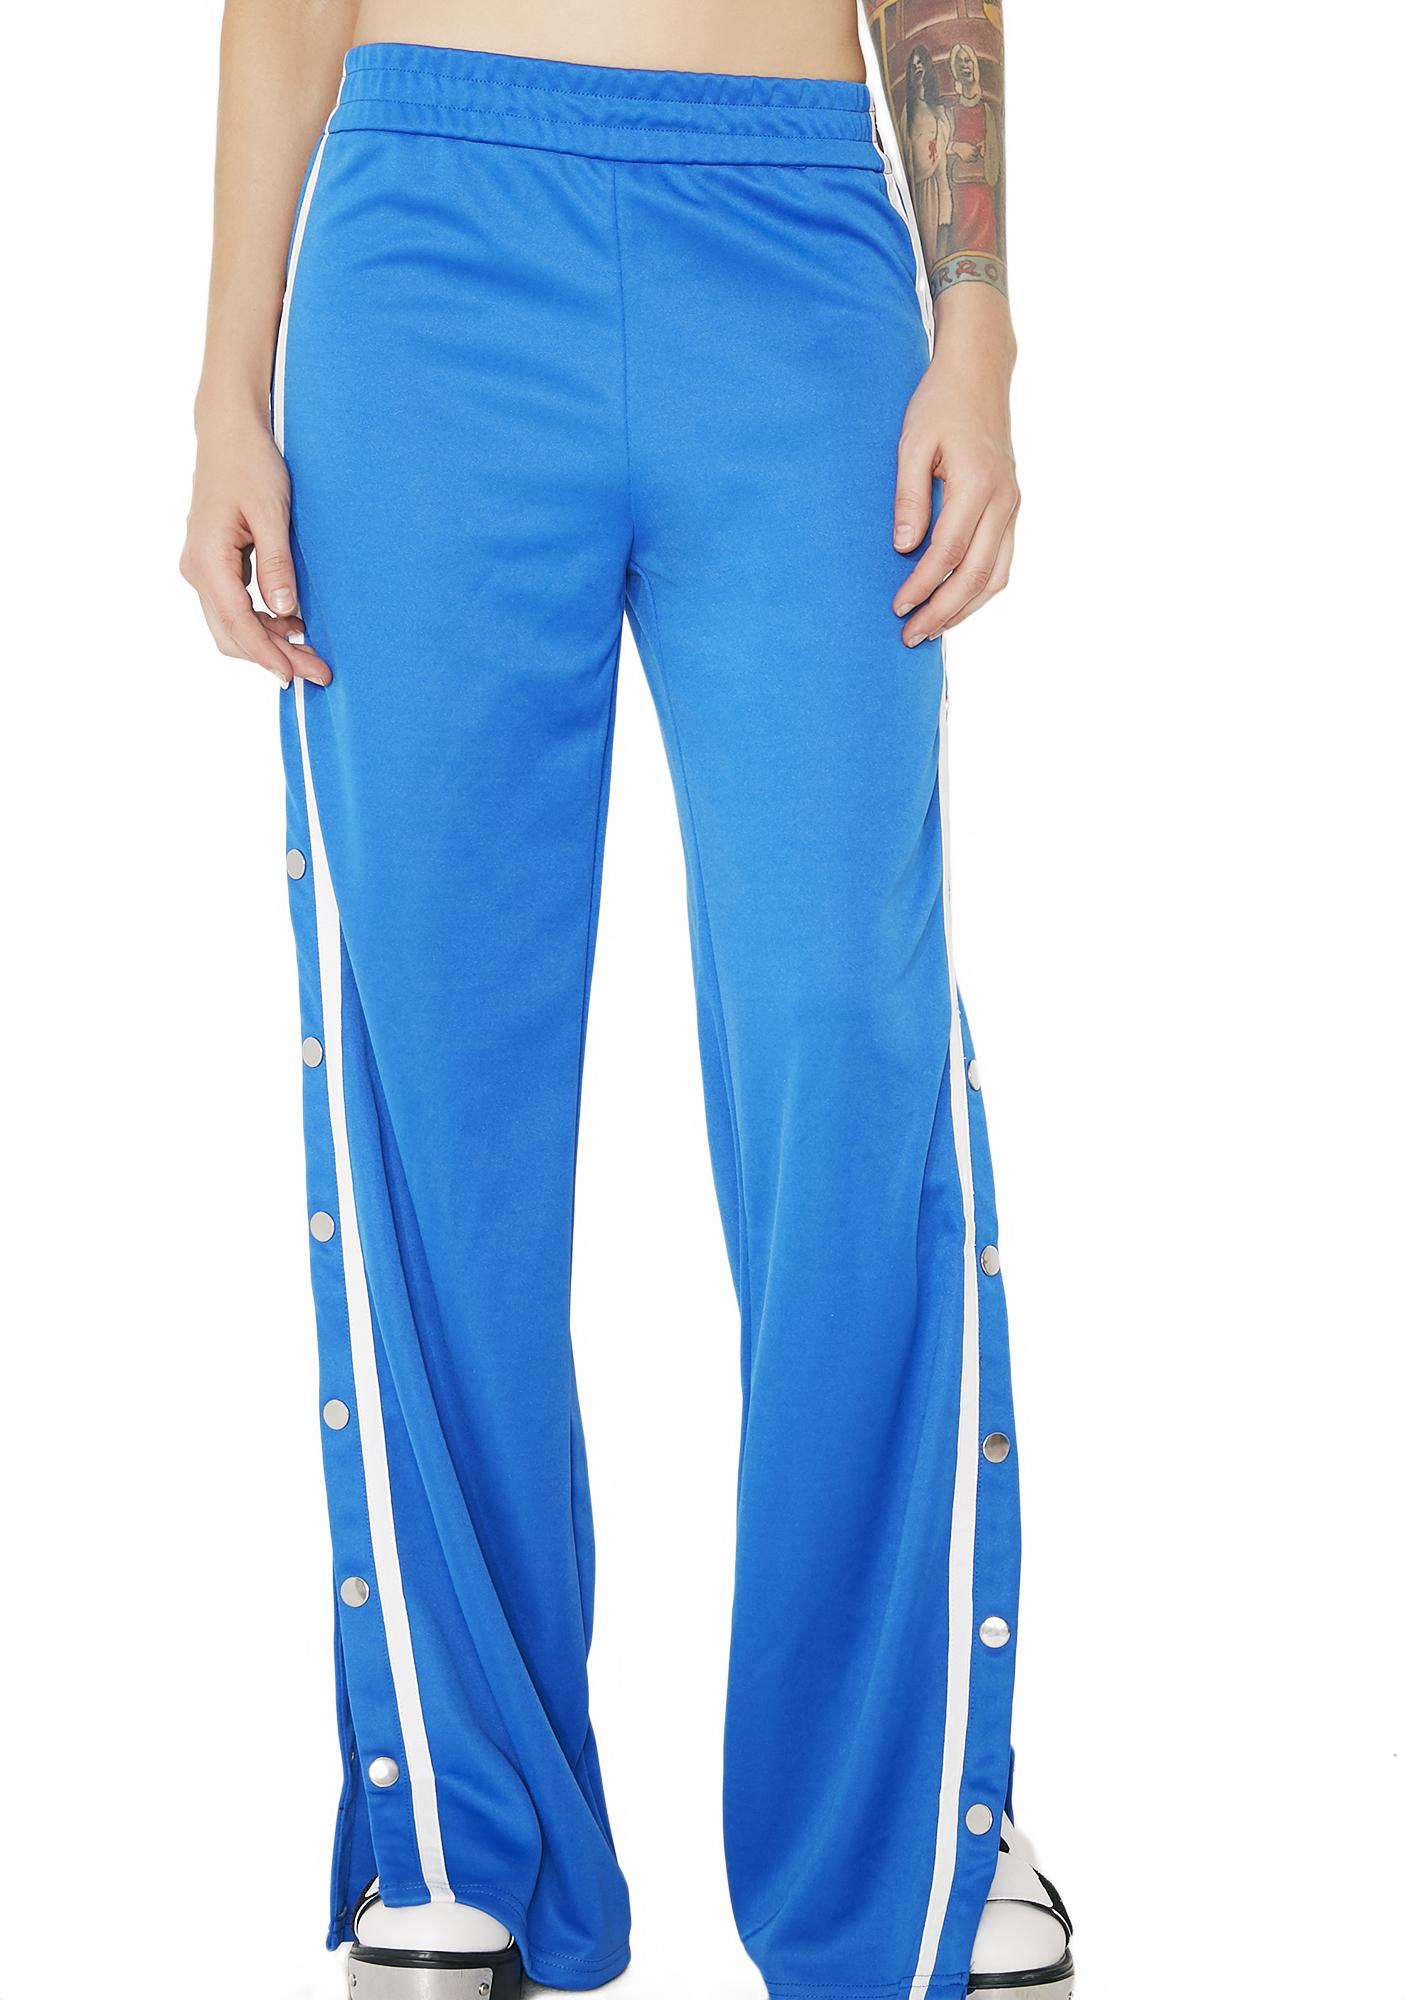 Cobalt Winner Takes All Snap Track Pants